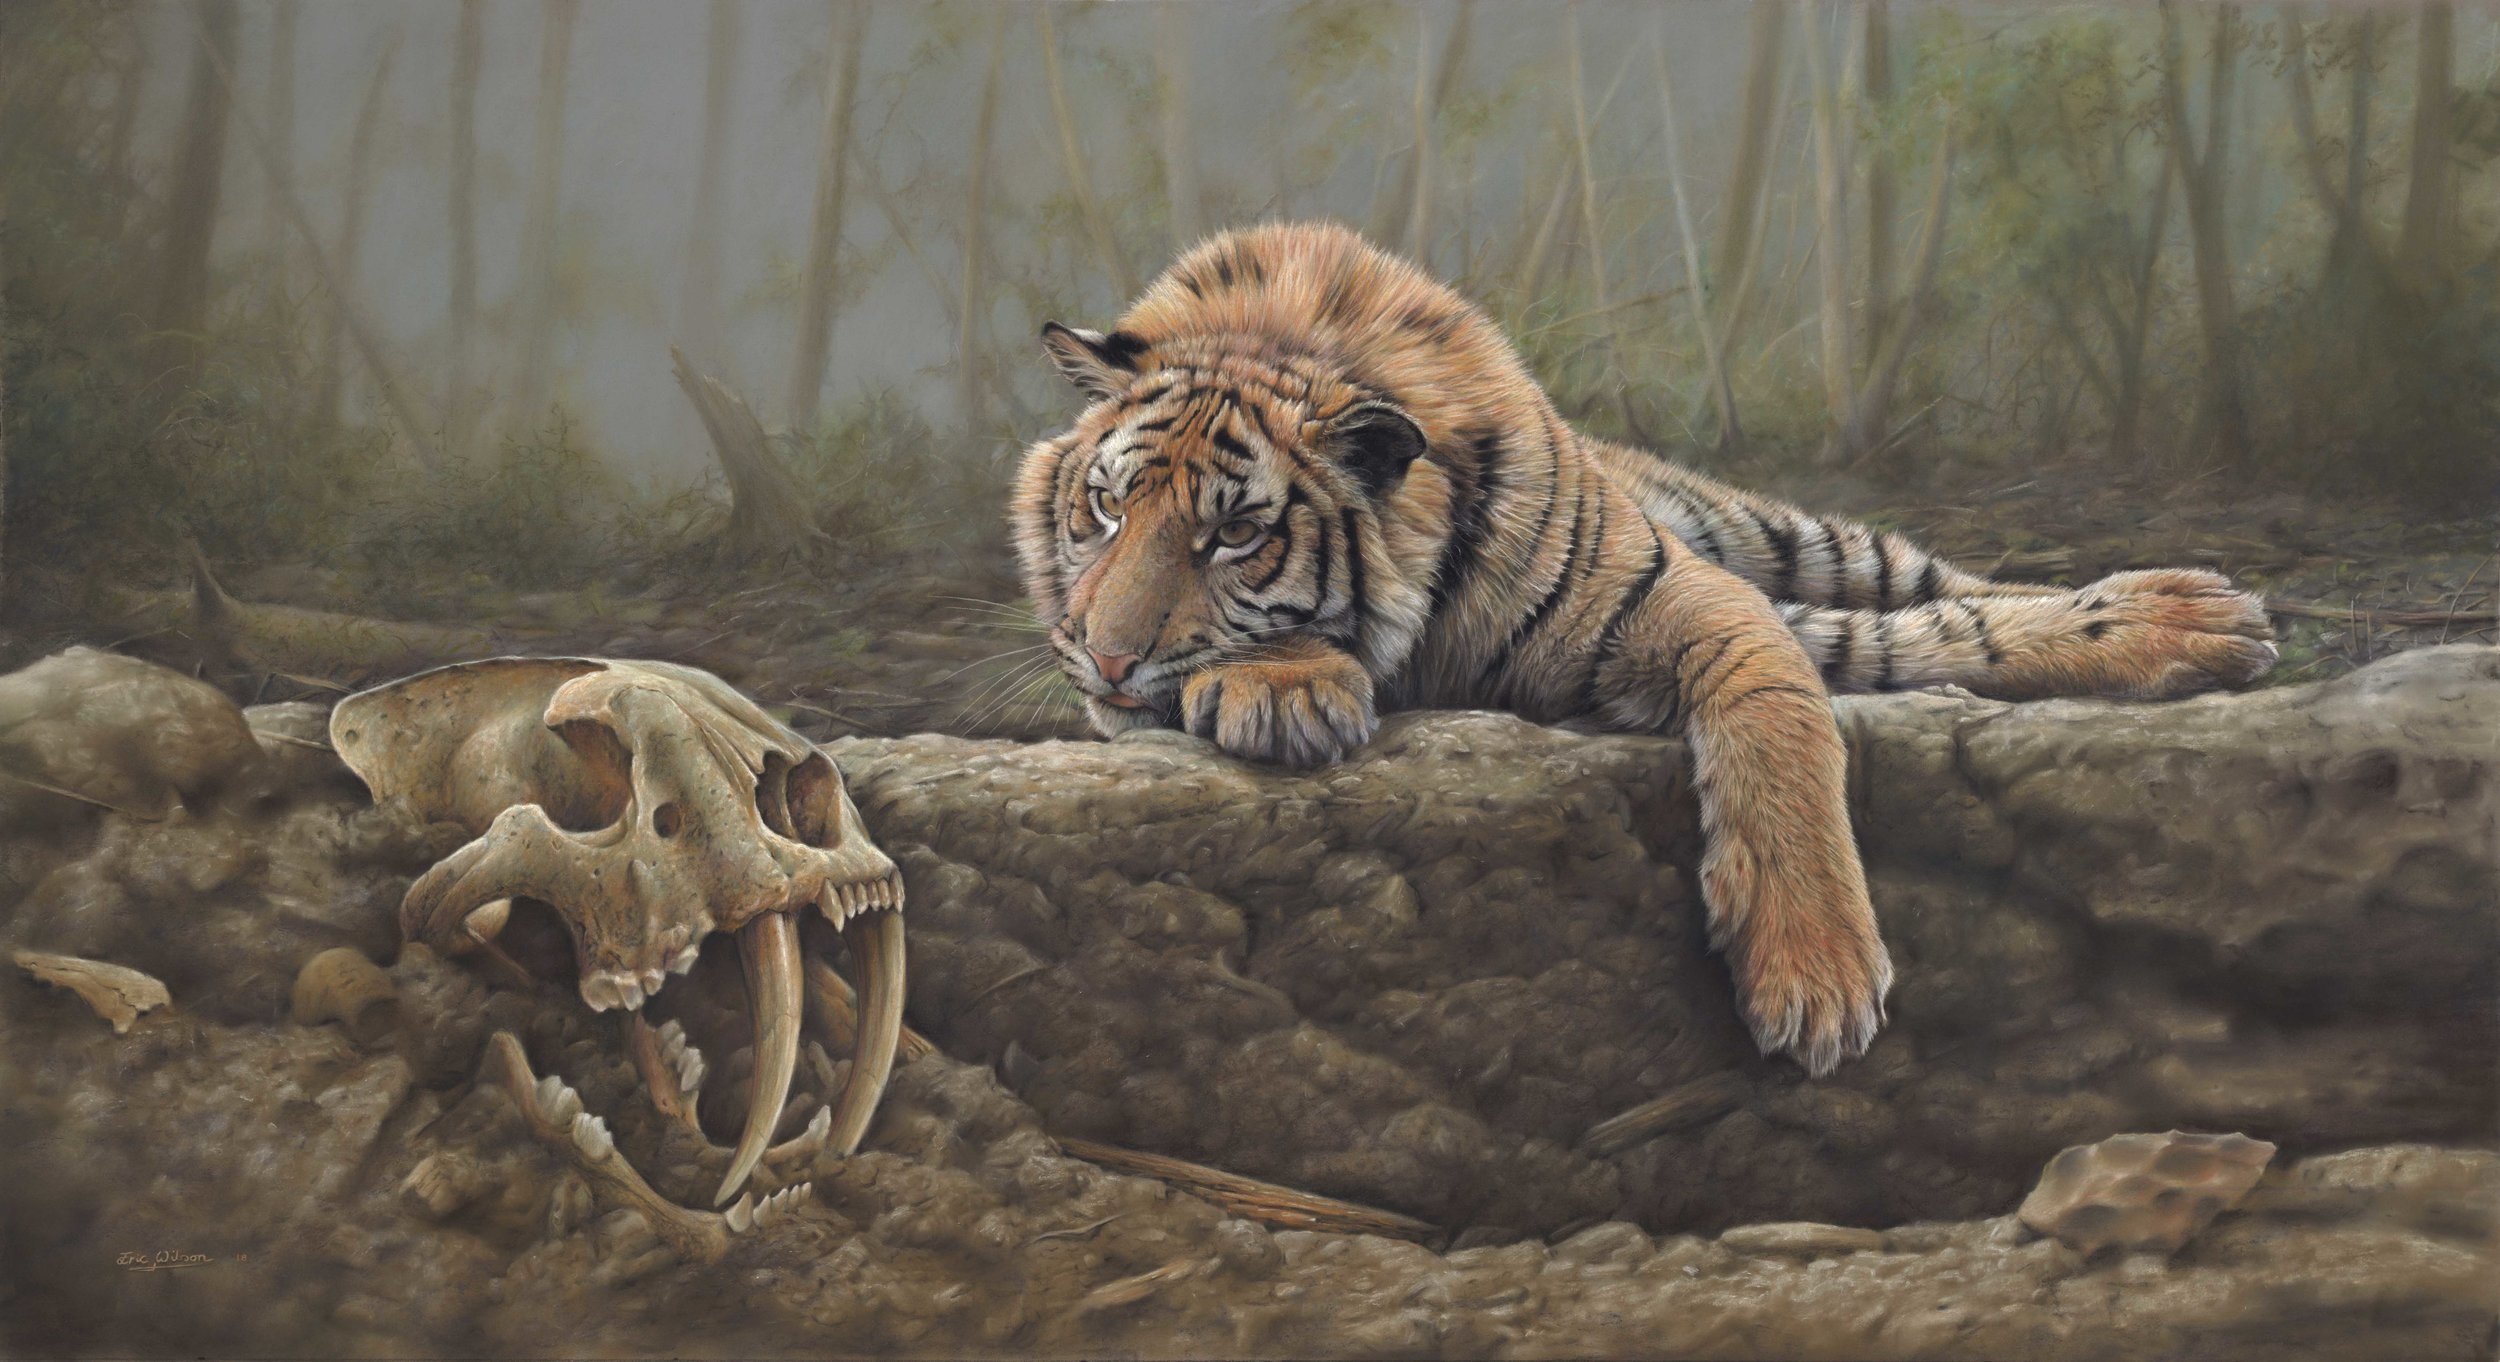 'Where Tigers Pray' - Pastel.  'Where Tigers Pray' is a painting I've had in my mind for many years and I'm happy that I found time to paint it over the Christmas period. I imagined a tiger captivated by a strange artifact before him; The skull of an extinct sabertooth tiger that had been unearthed by an eroding riverbank. It was originally conceived with the title 'Or not to be' as a question mark hanging over the fate of all big cats past and present, but as the painting began to take shape the strong connection between the tiger and his long extinct ancestor began to take on a spiritual quality all of its own, and the ground upon which he lay, appeared to me to be in more of a secret, sacred place, an altar even, known only to tigers, and hence the title 'Where Tigers Pray' It is a fantasy piece, but I like that quality in a painting. I hope you do too.